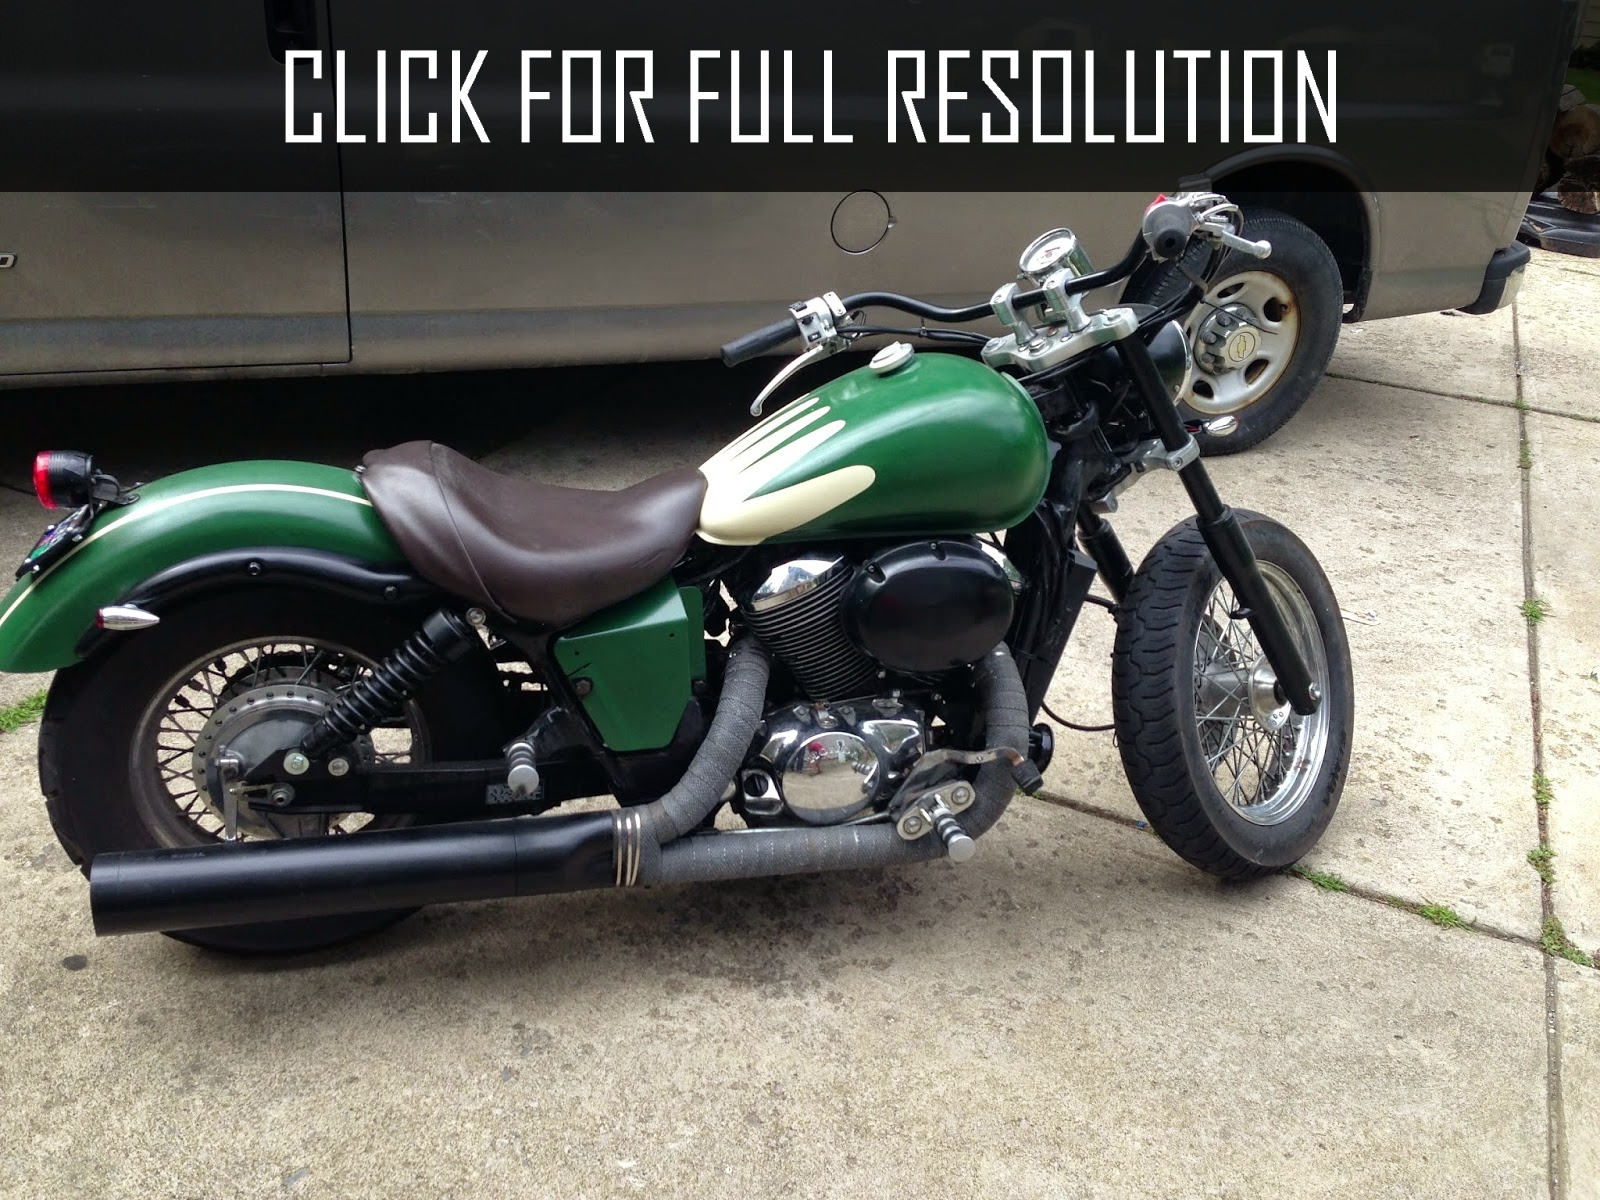 hight resolution of 1999 honda shadow ace 1100 wiring diagram images gallery